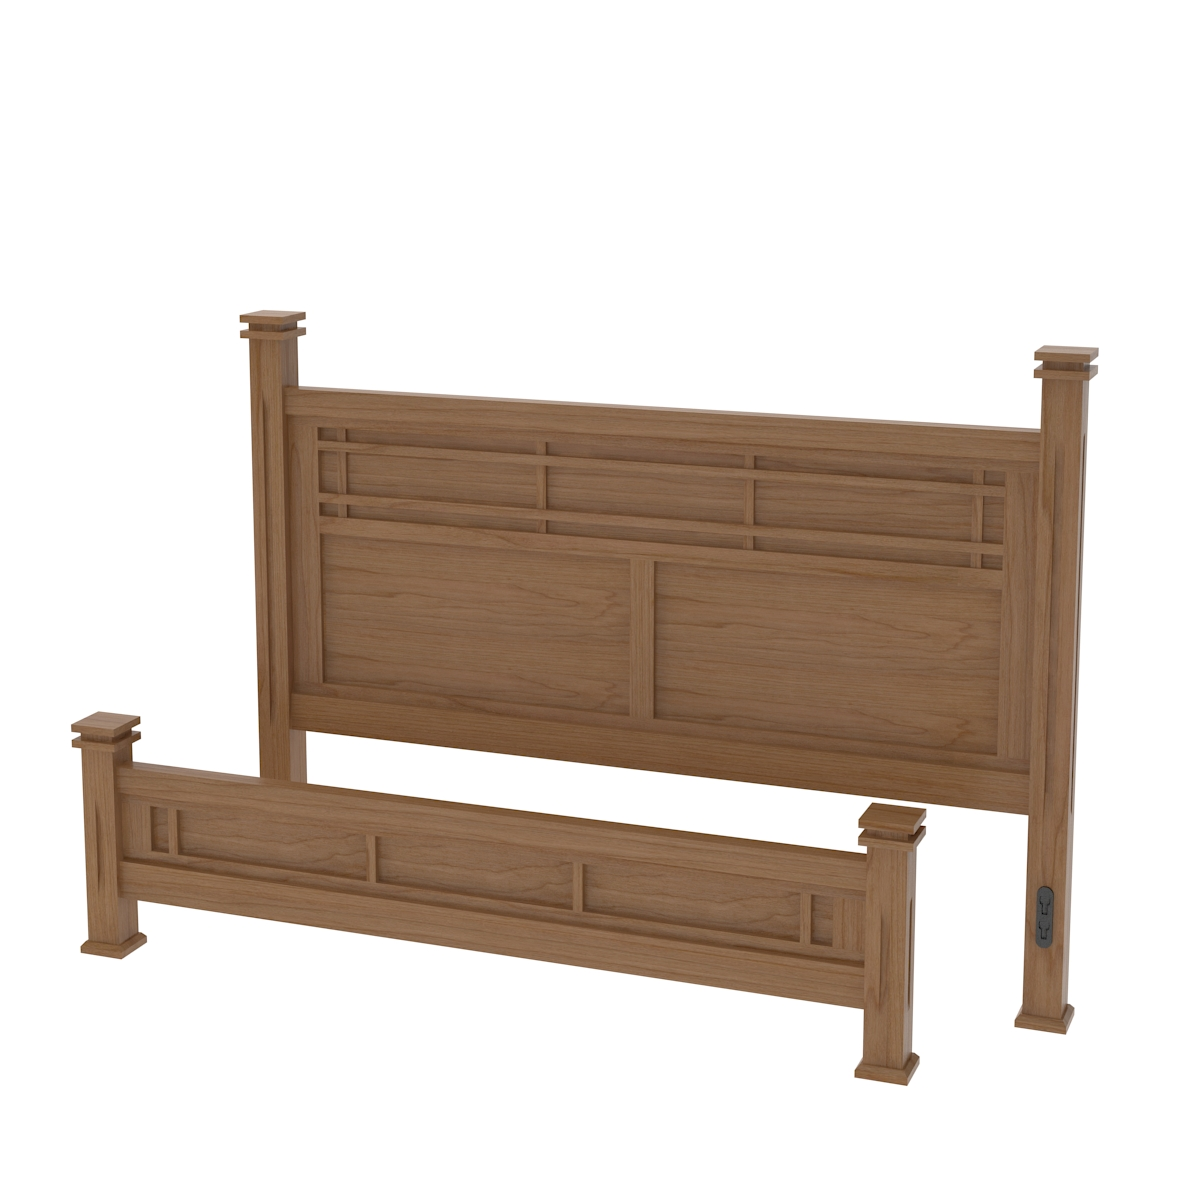 Sacramento Triptych Platform Bed Solid Wood Platform Bed In The Sacramento